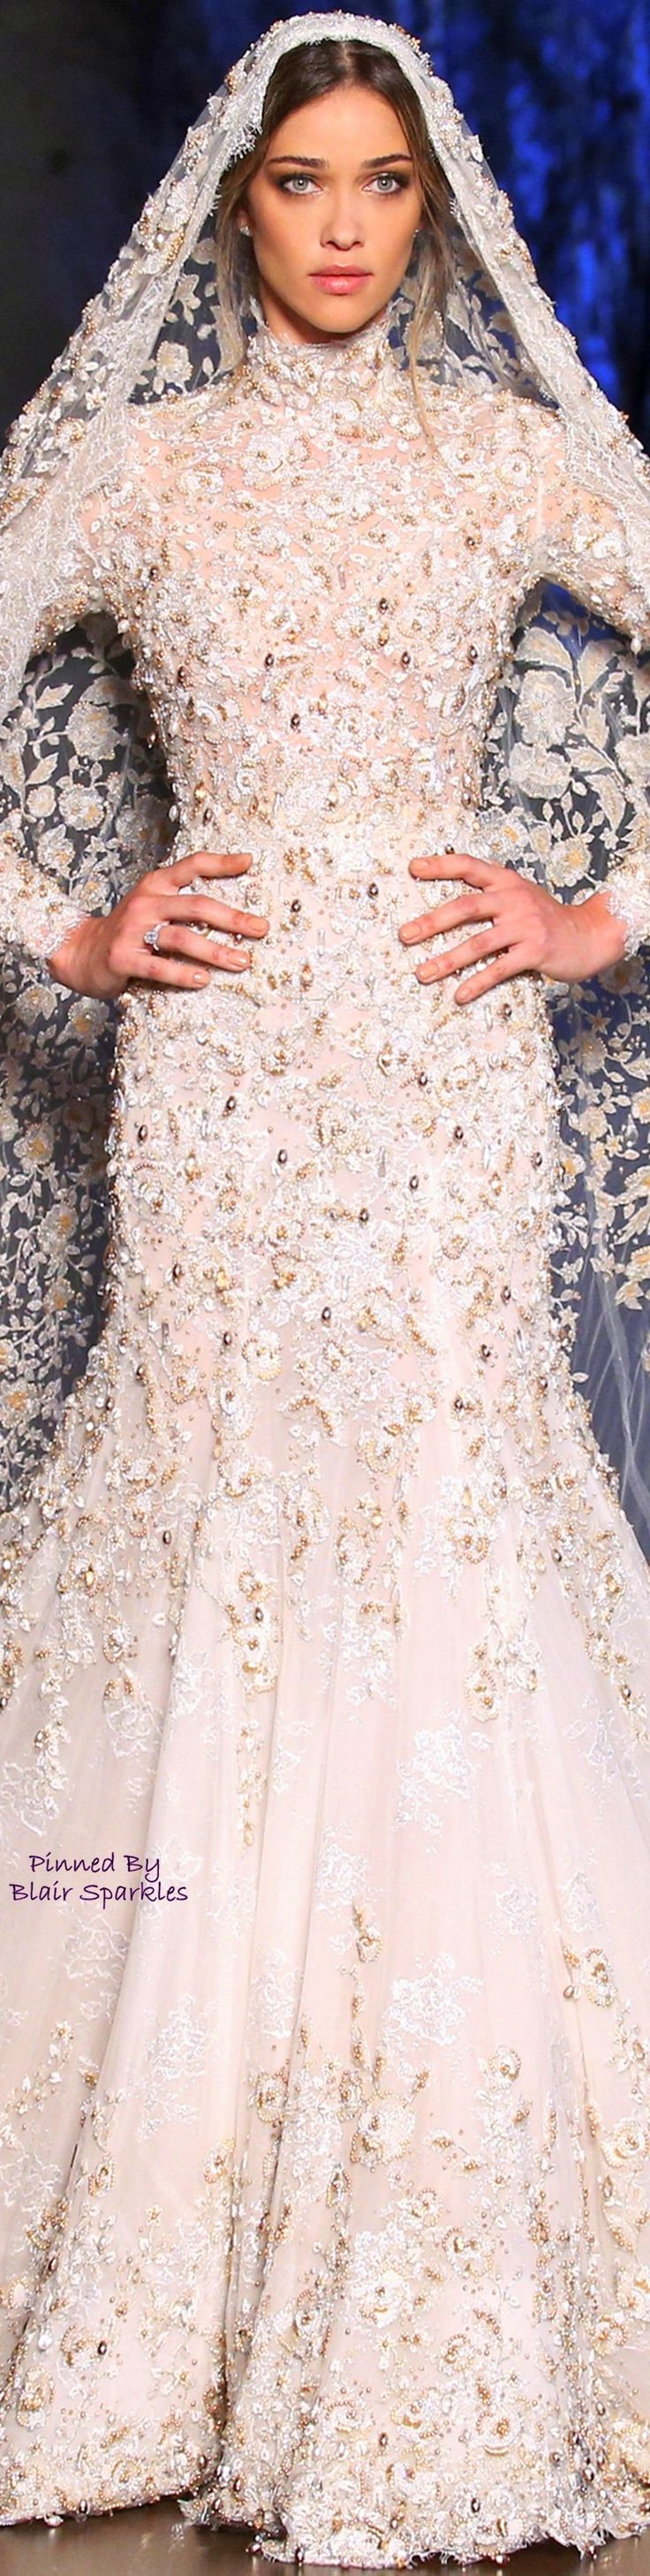 FALL COUTURE 2015 RALPH & RUSSO ♕♚εїз | BLAIR SPARKLES |